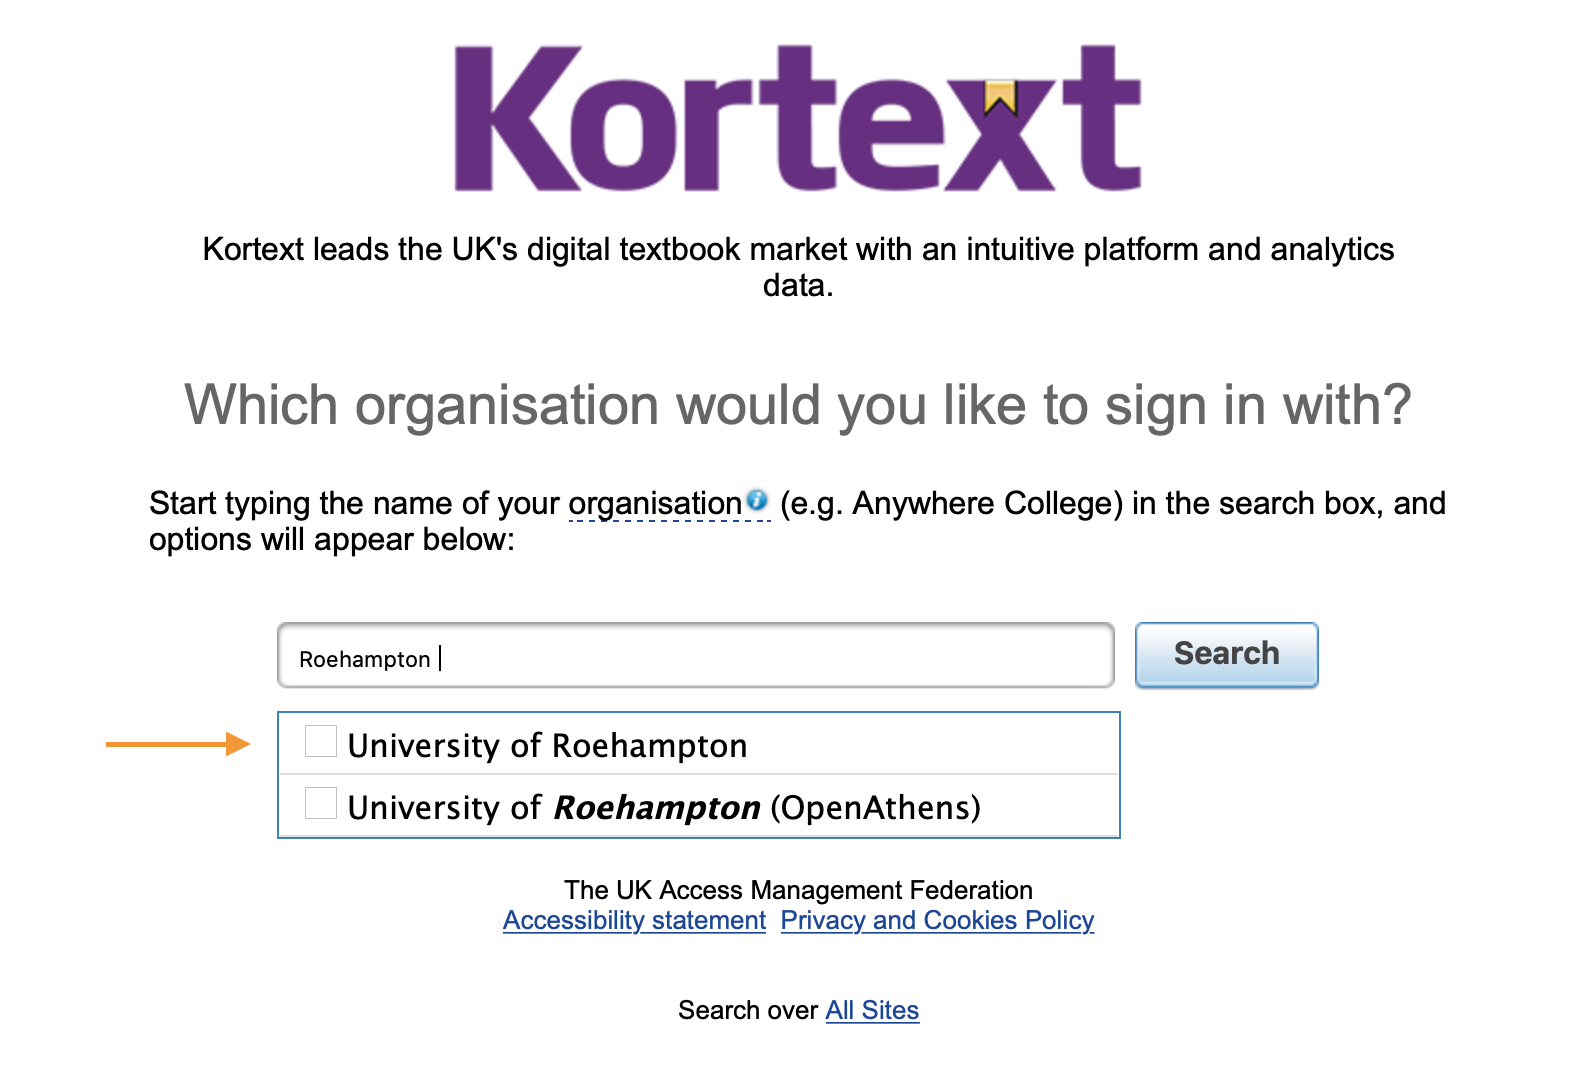 Select the first option. Do not use OpenAthens.